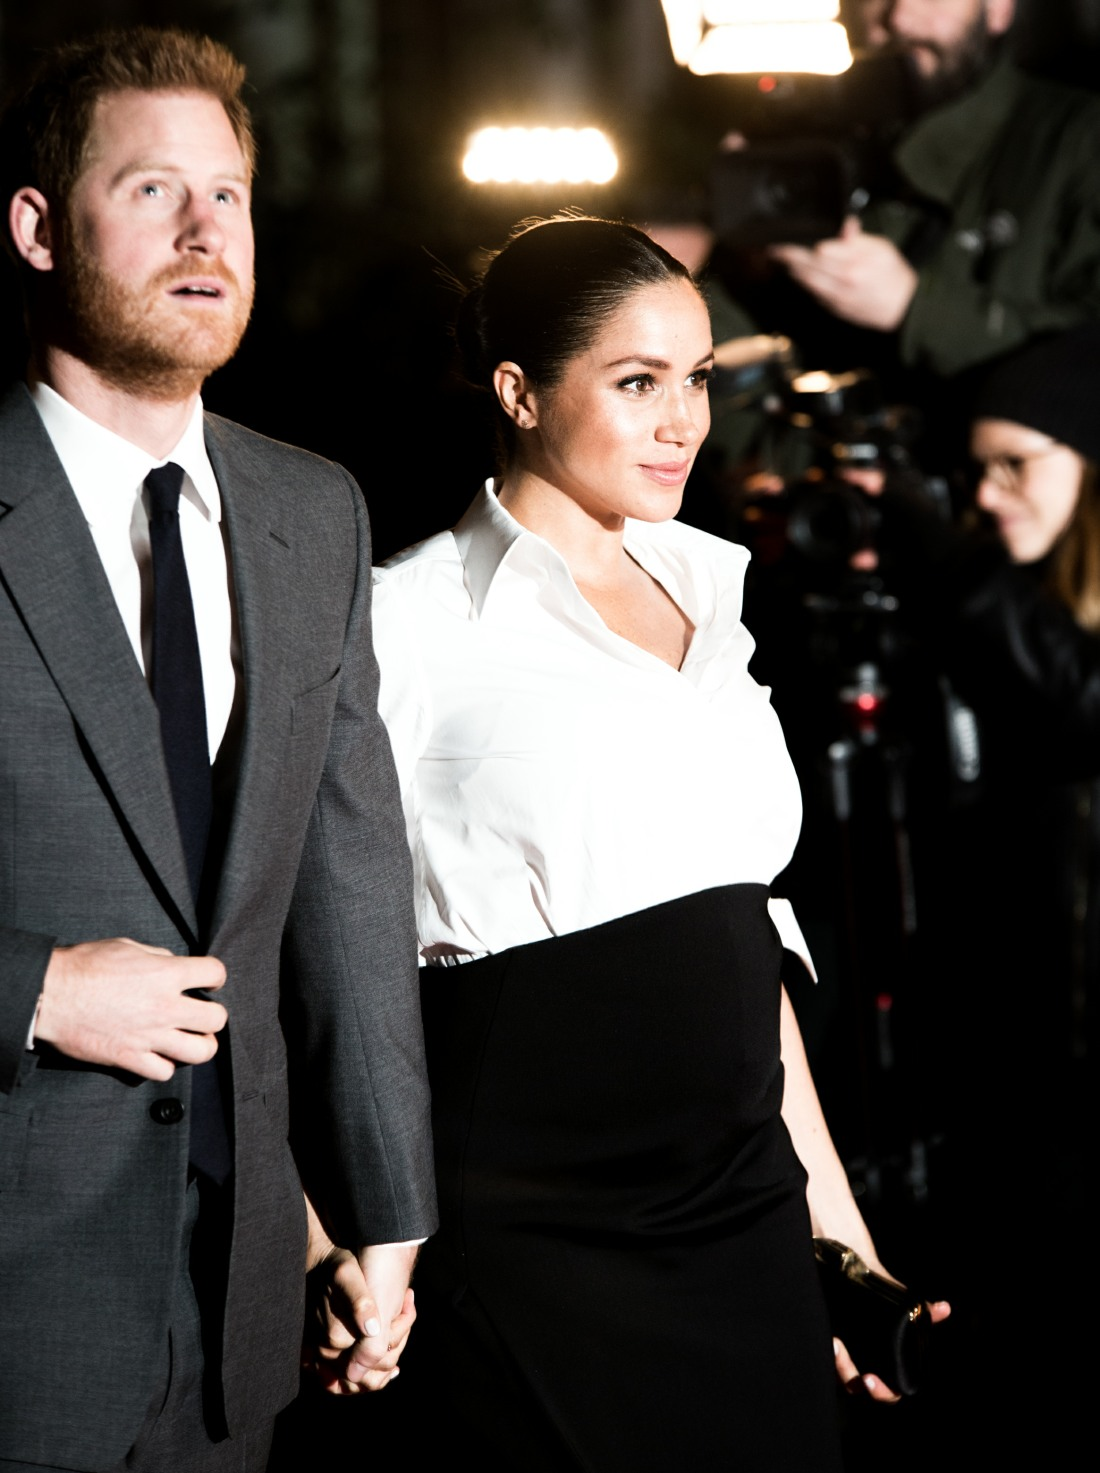 The Duke and Duchess of Sussex arrive at the Endeavour Fund Awards